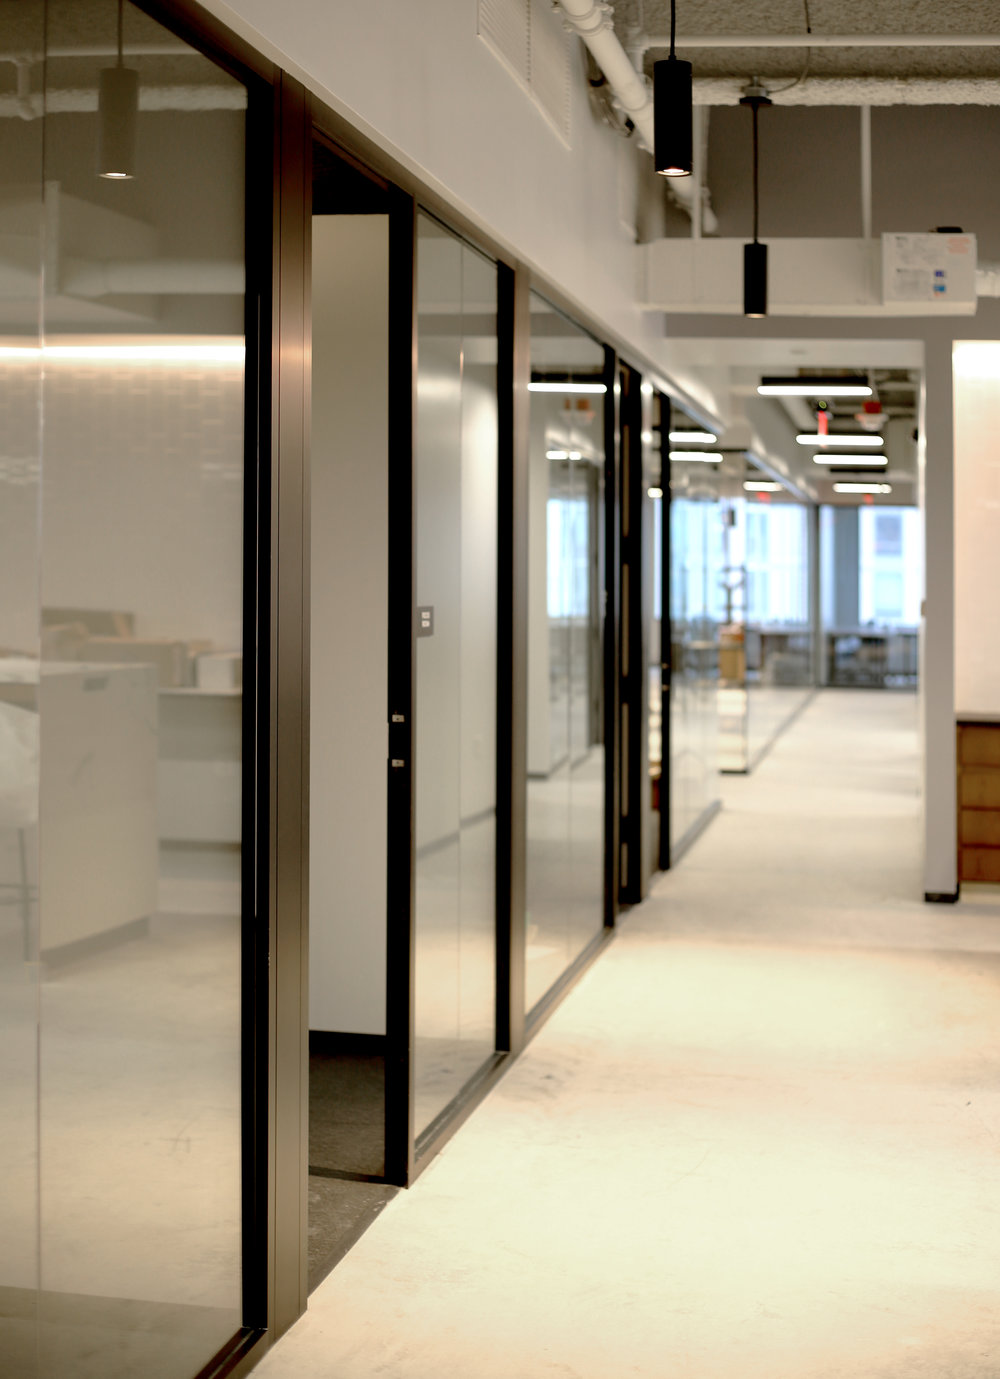 Litespace Black Demountable Aluminum Framed Office Fronts - Spaceworks AI.jpg